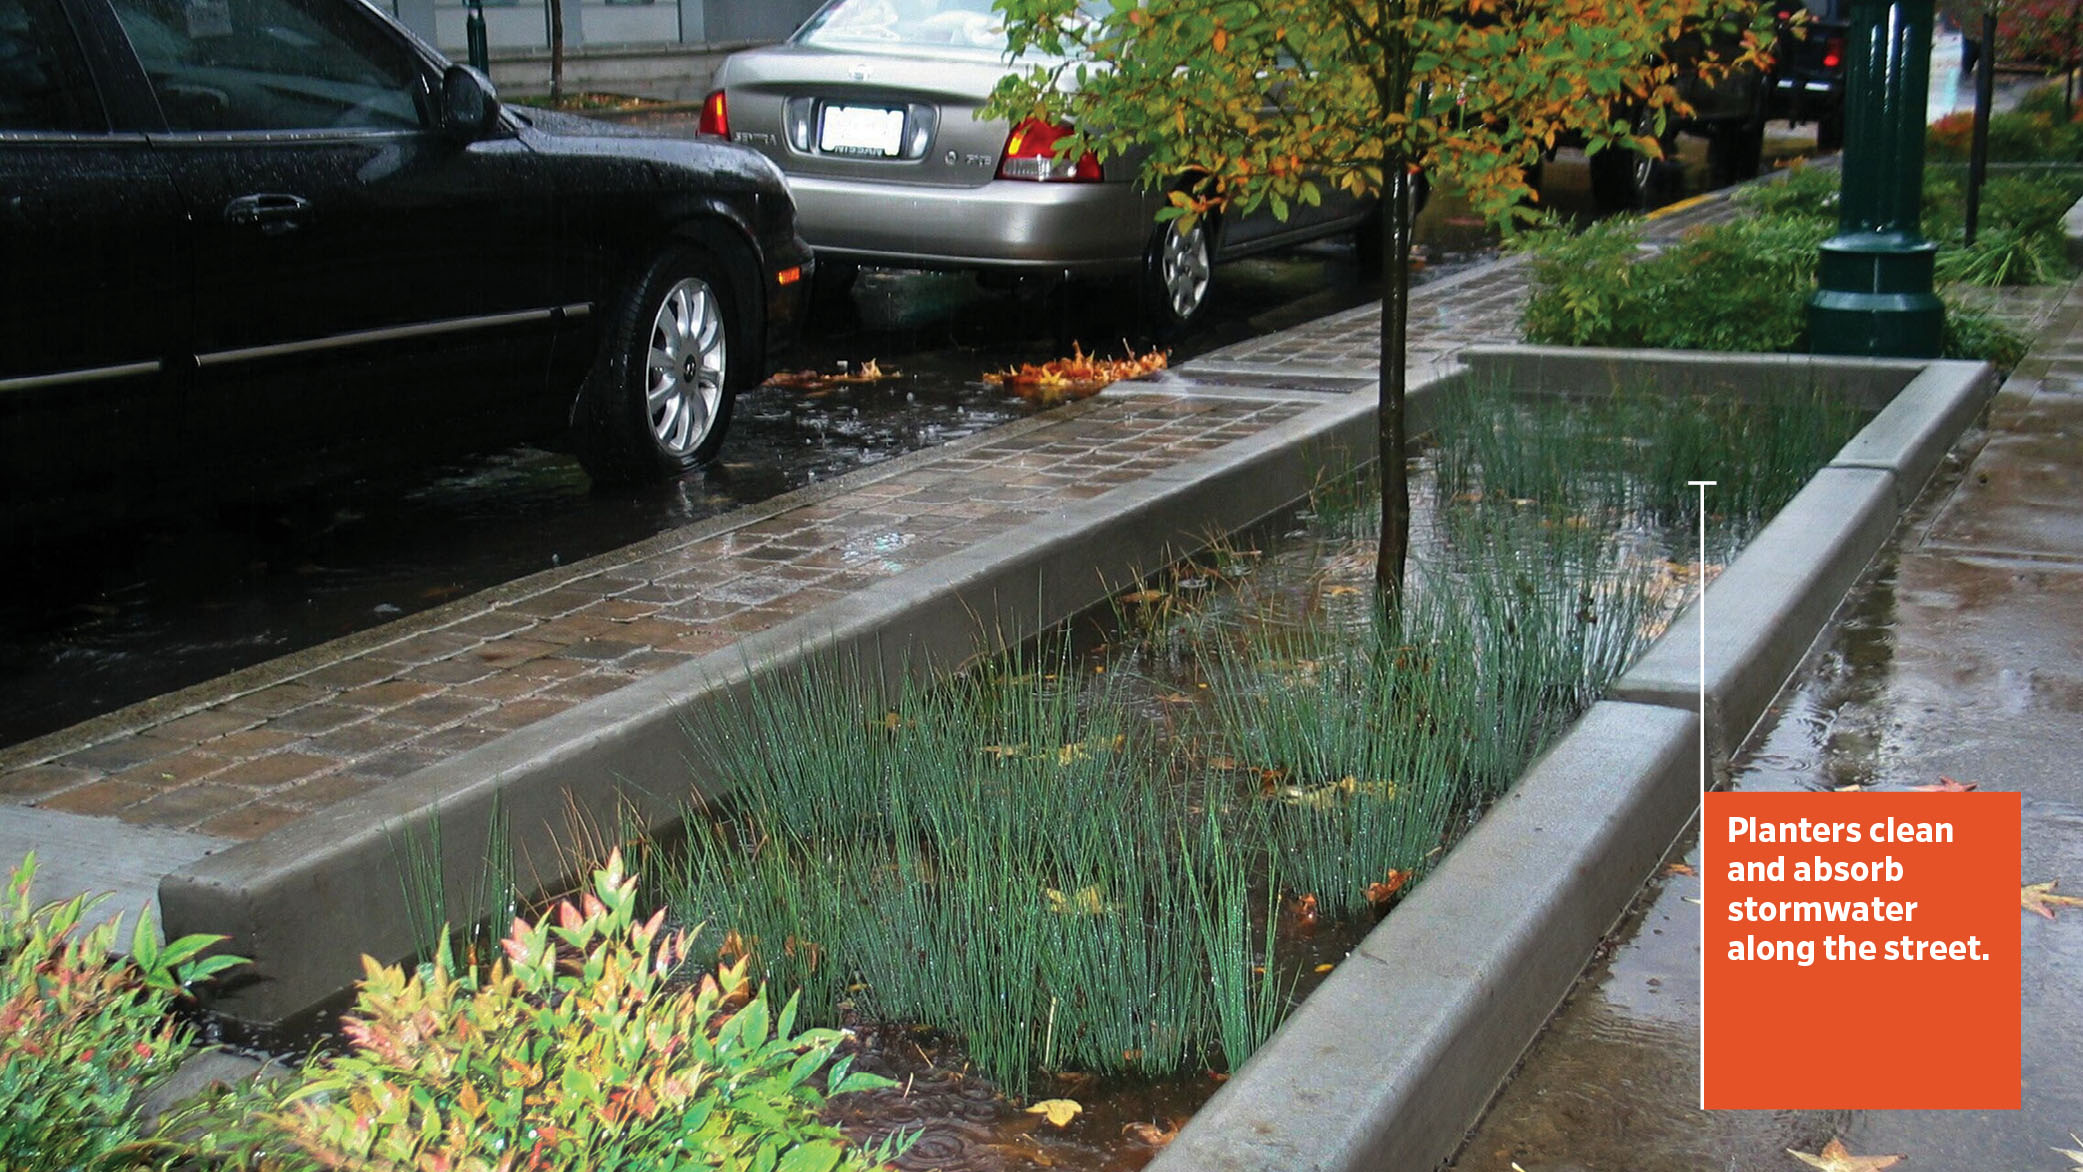 Each stormwater planter captures runoff to a depth of six inches until it flows back out into the street and is collected in the next downhill planter.